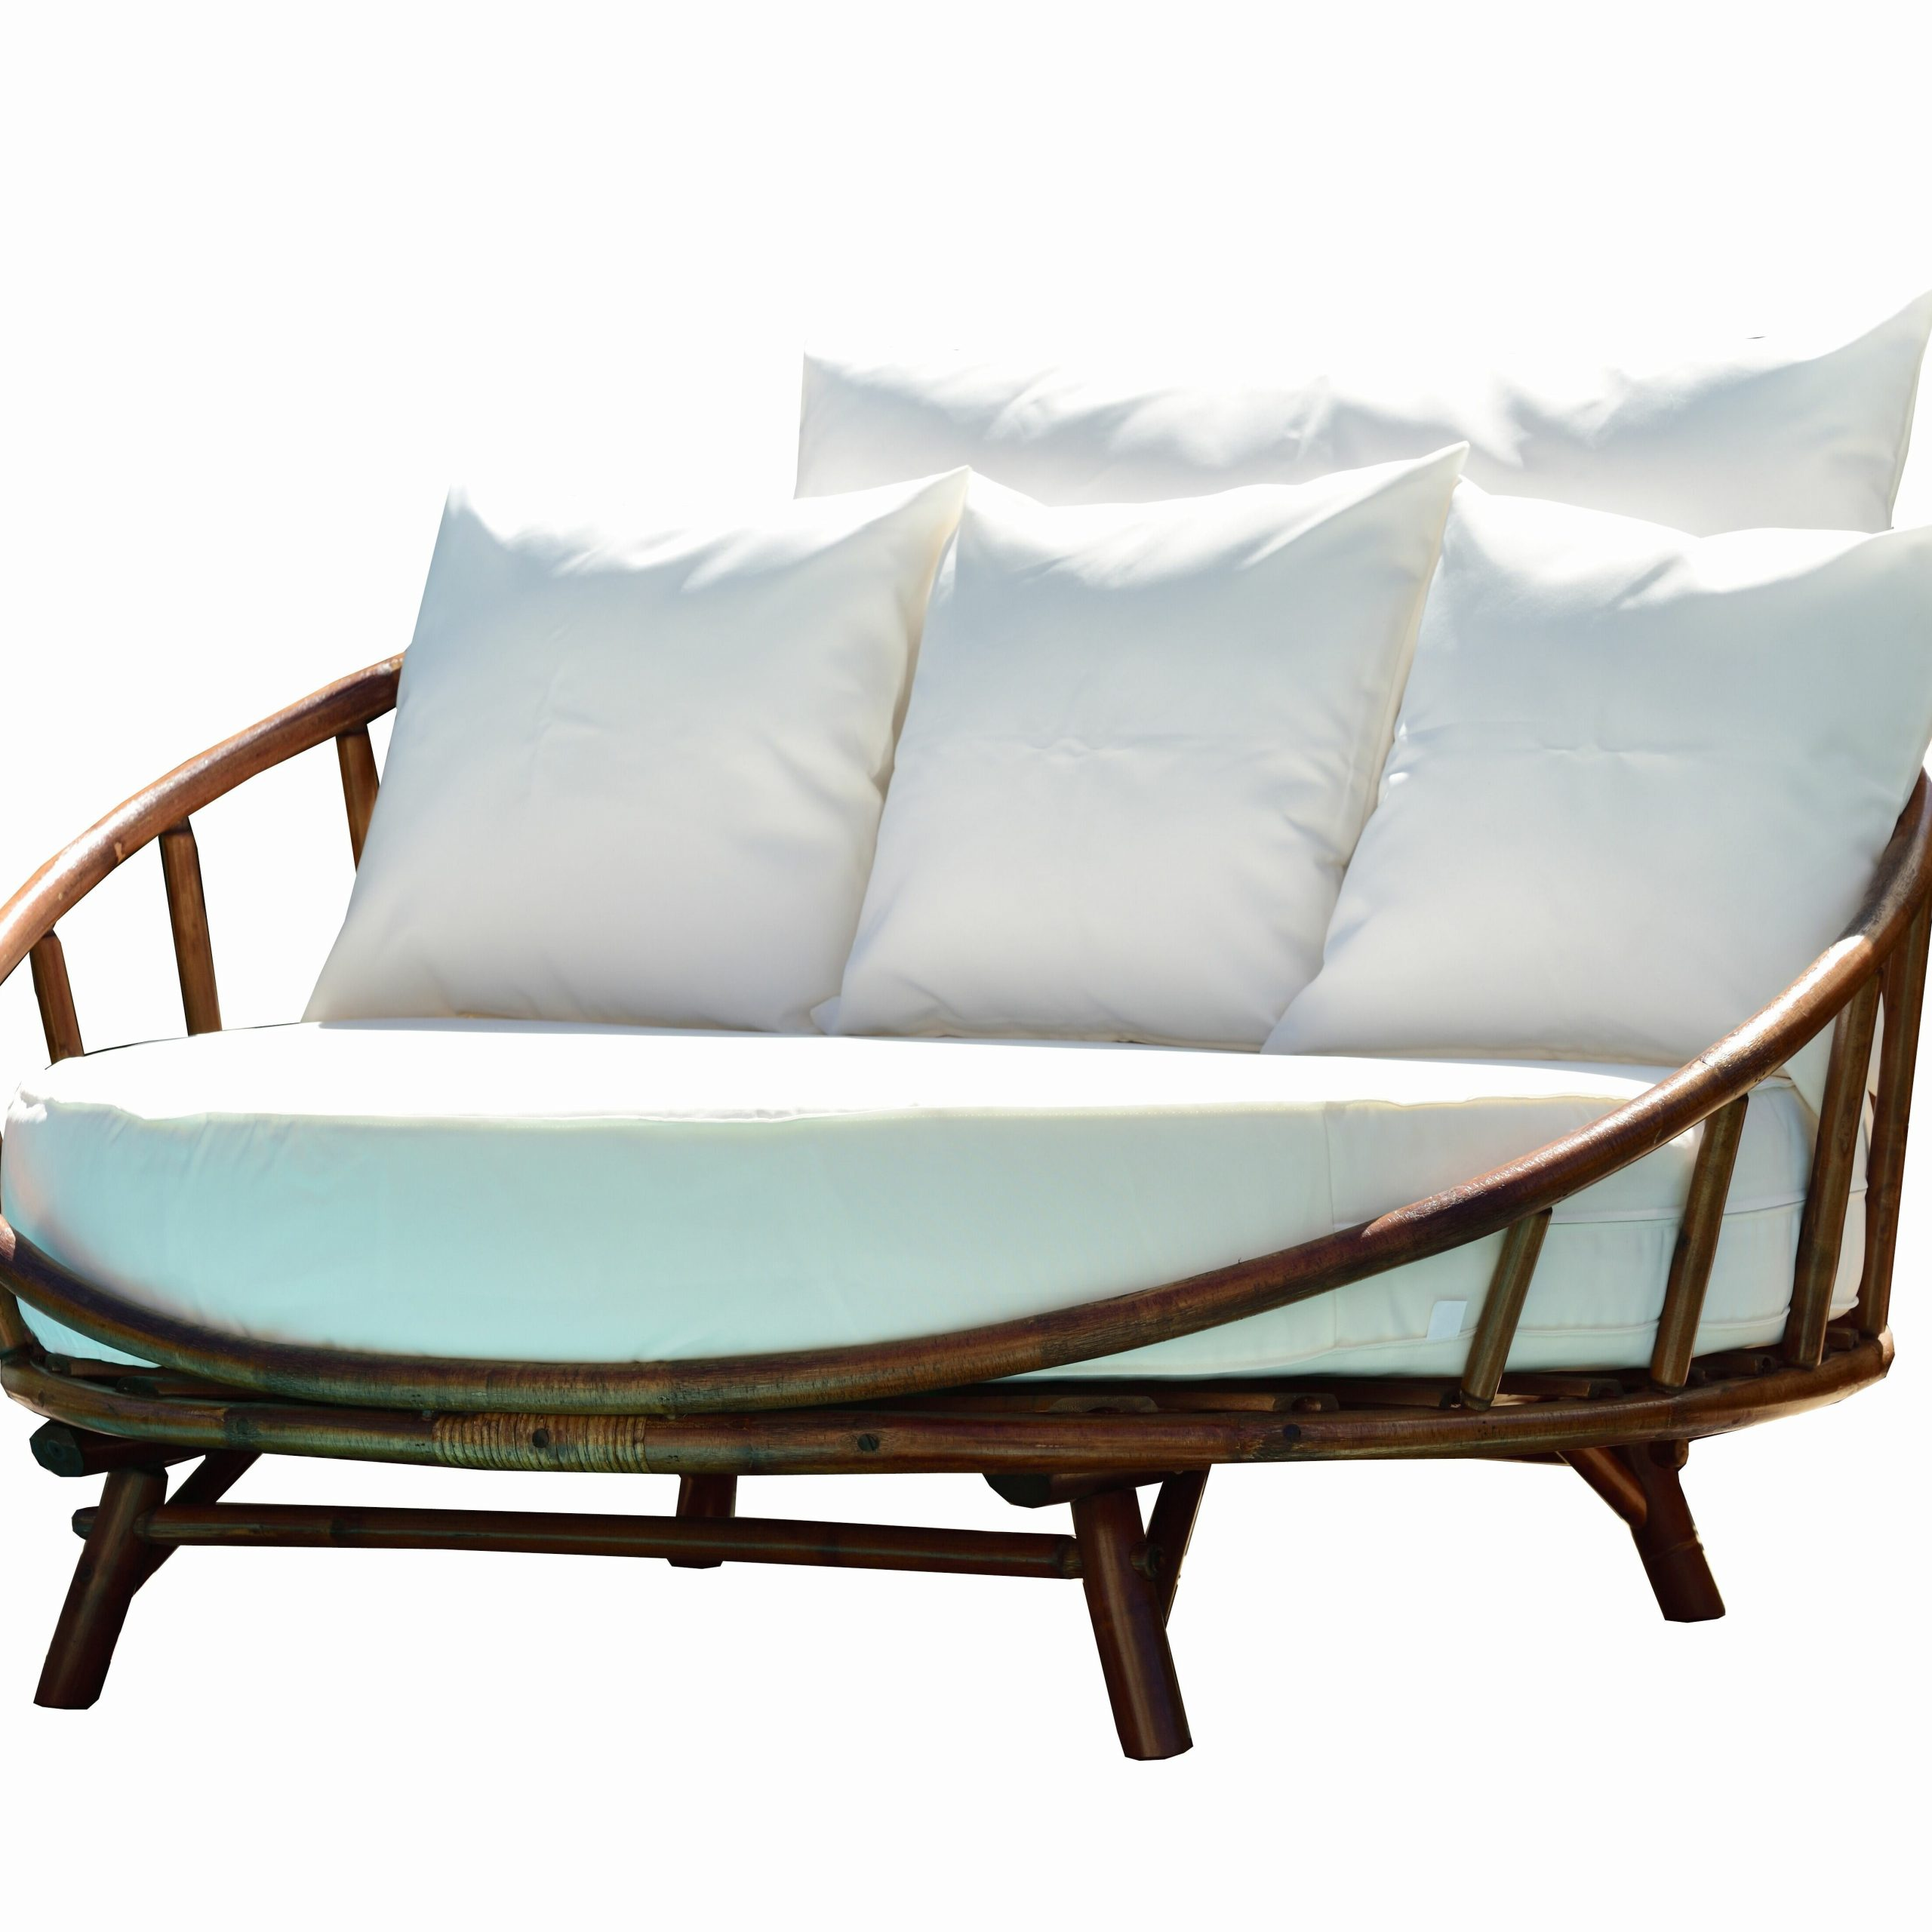 Ellanti Patio Daybeds With Cushions Inside Most Current Olu Bamboo Large Round Patio Daybed With Cushions (View 10 of 25)